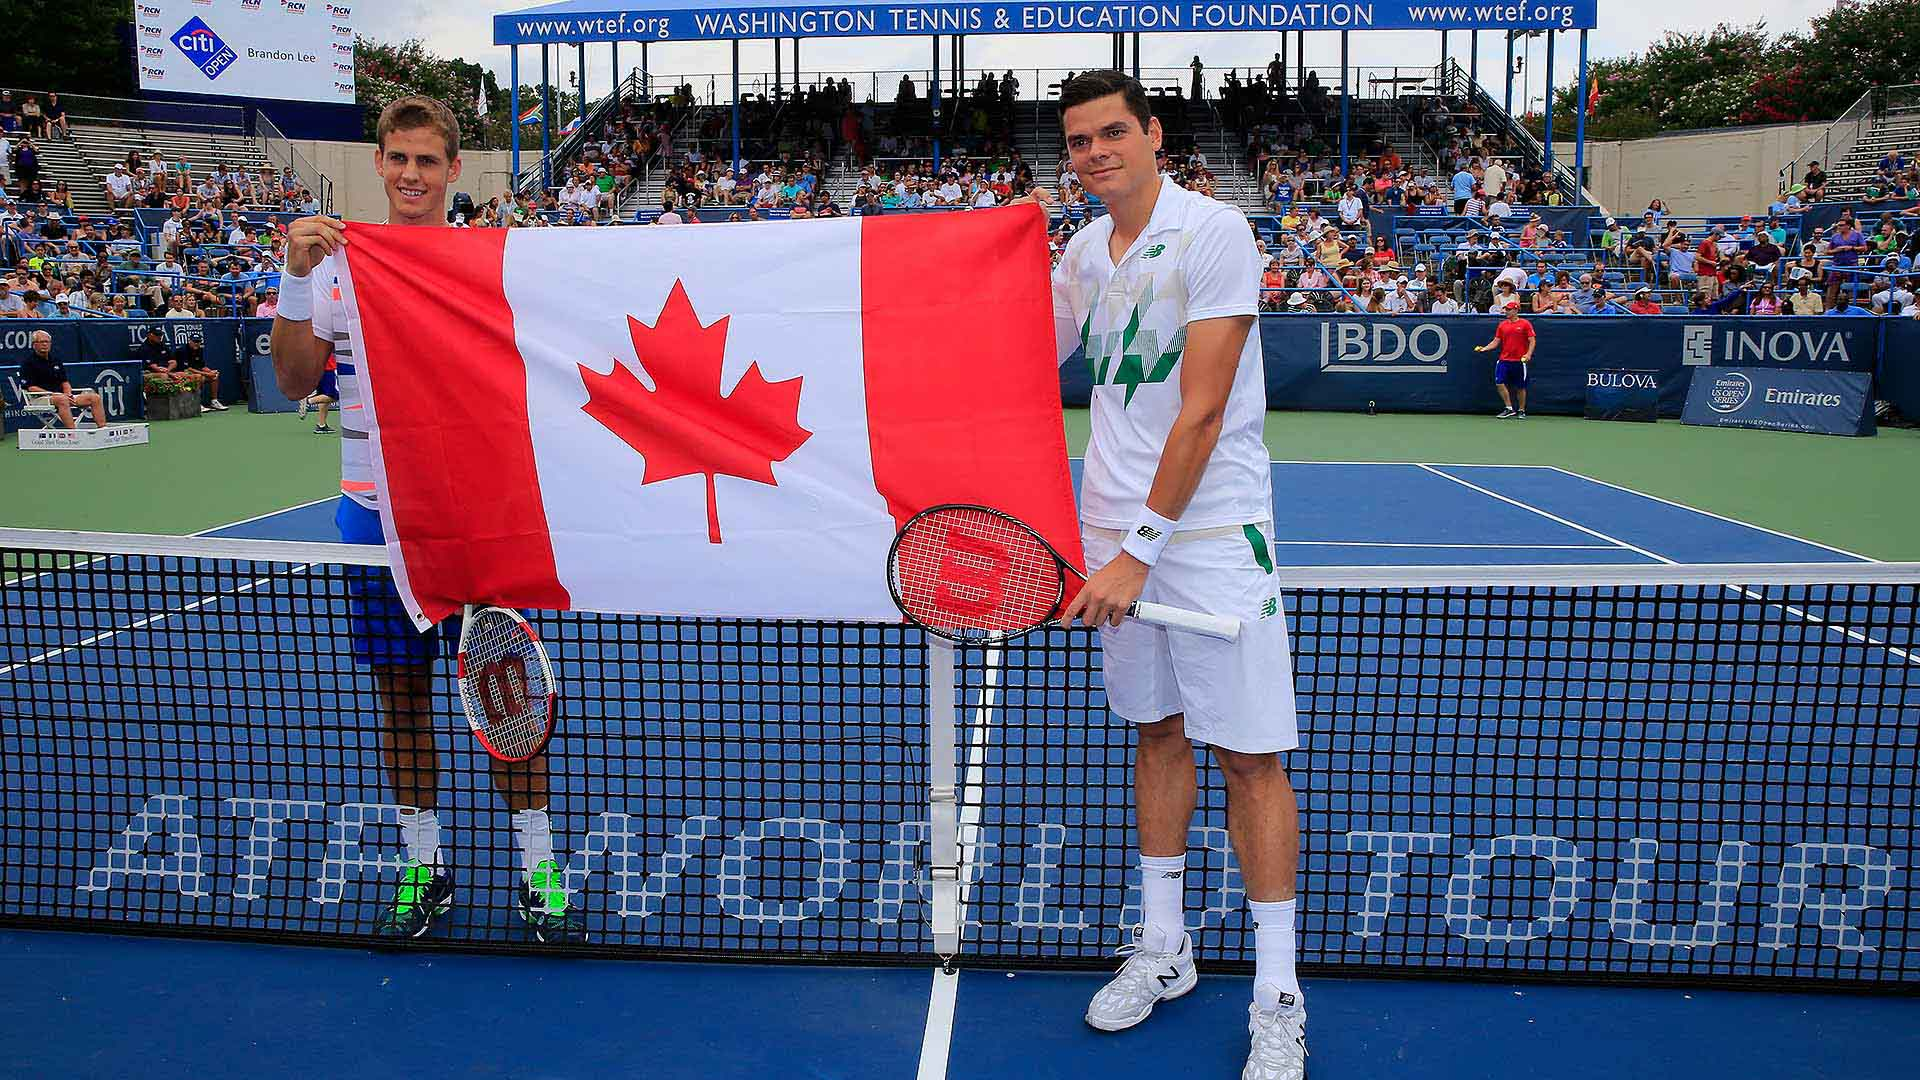 Washington 2014 Sunday Raonic Pospisil